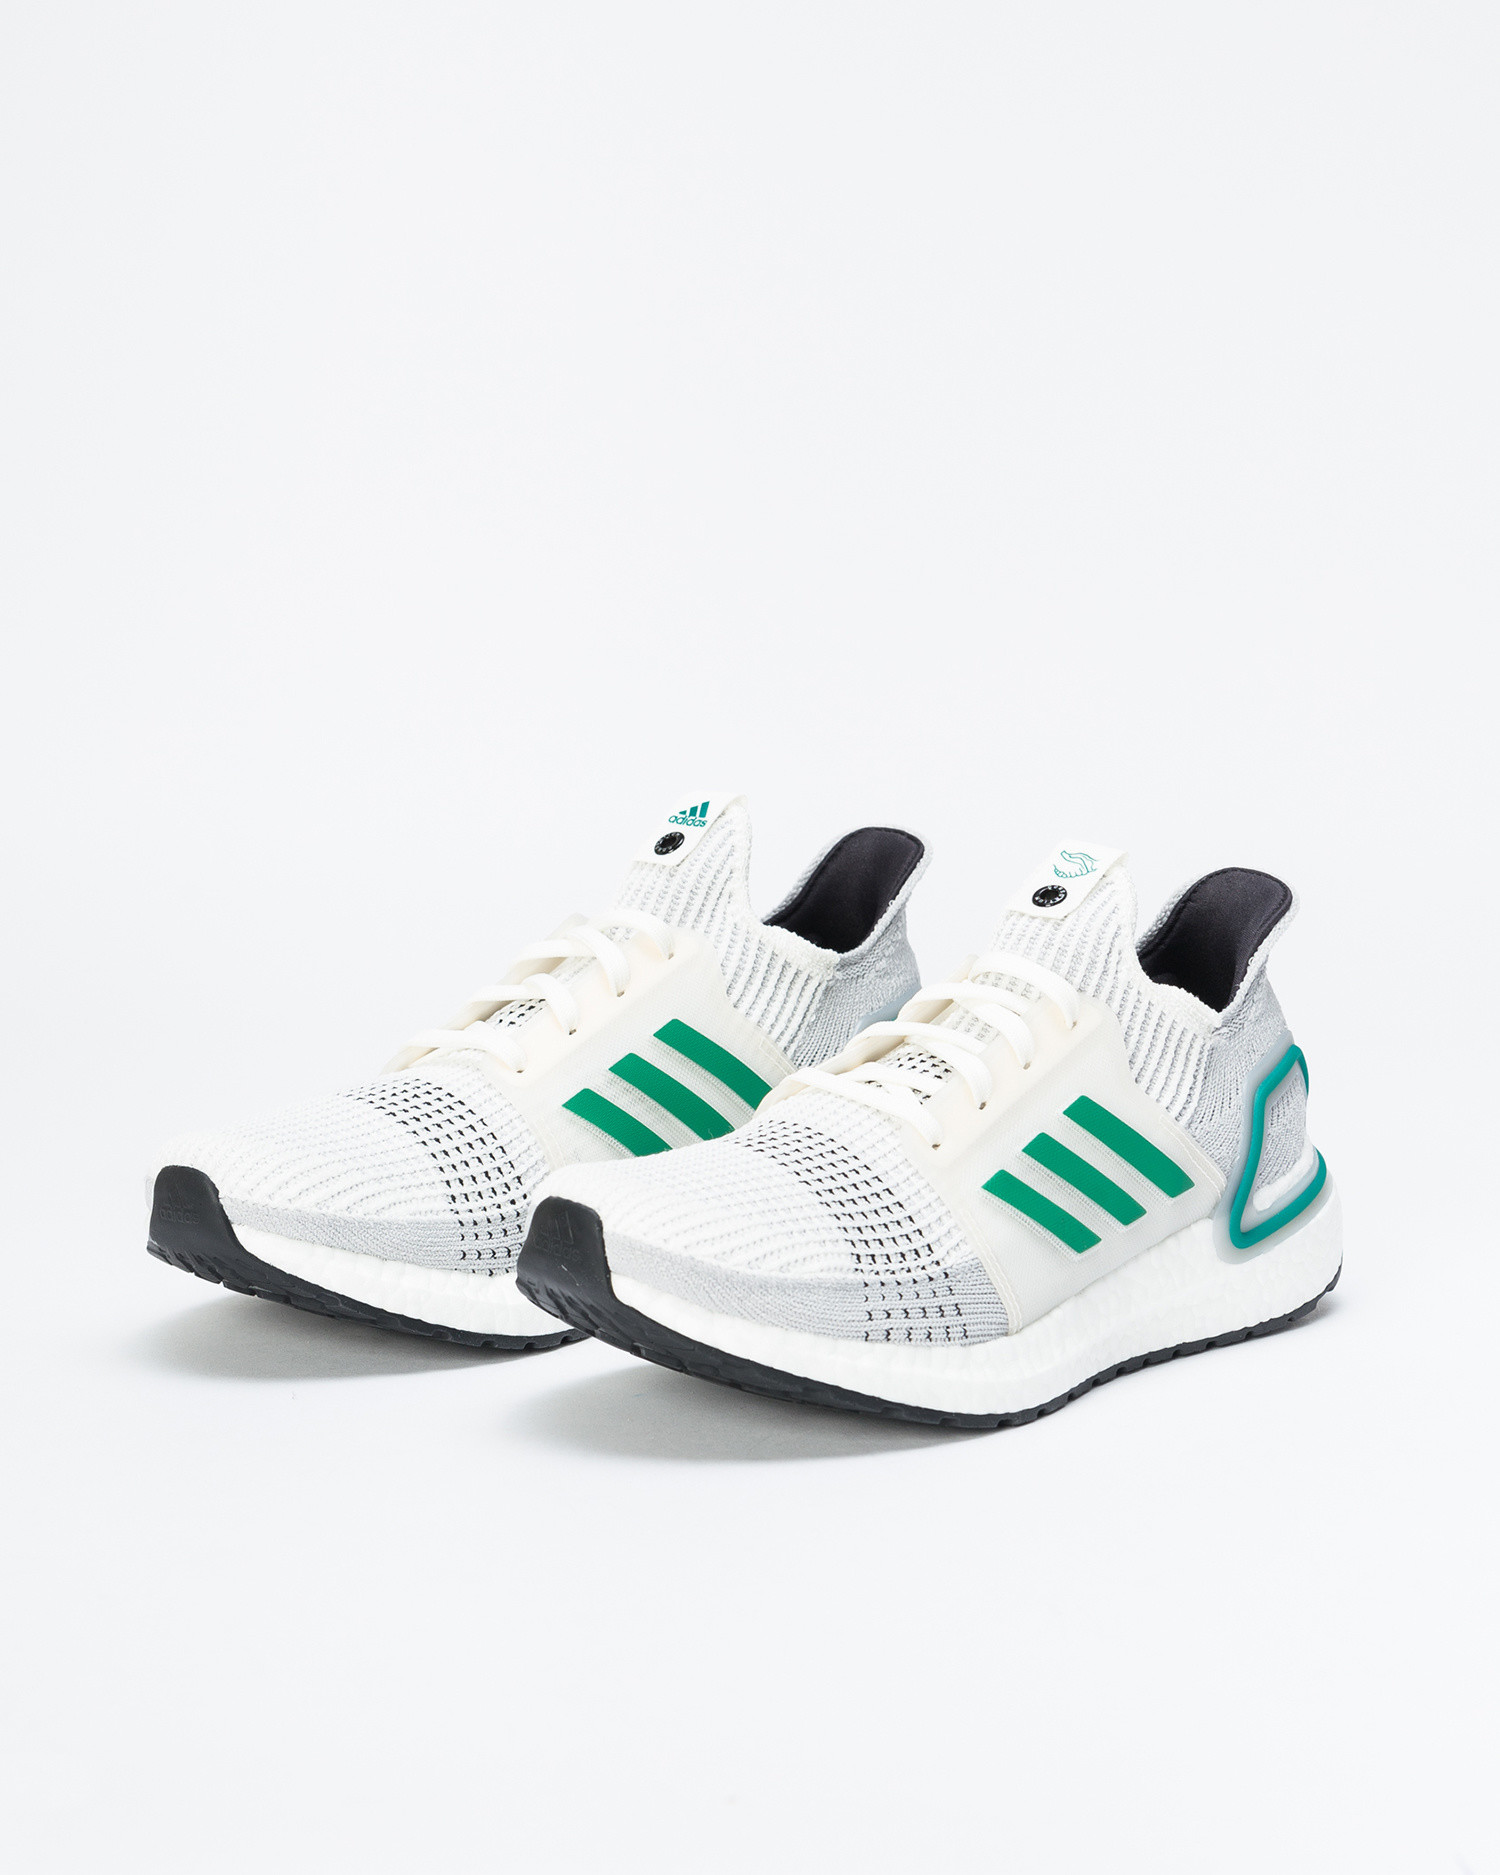 superior quality 4d8c7 74008 adidas Consortium Ultraboost 19 White/Green